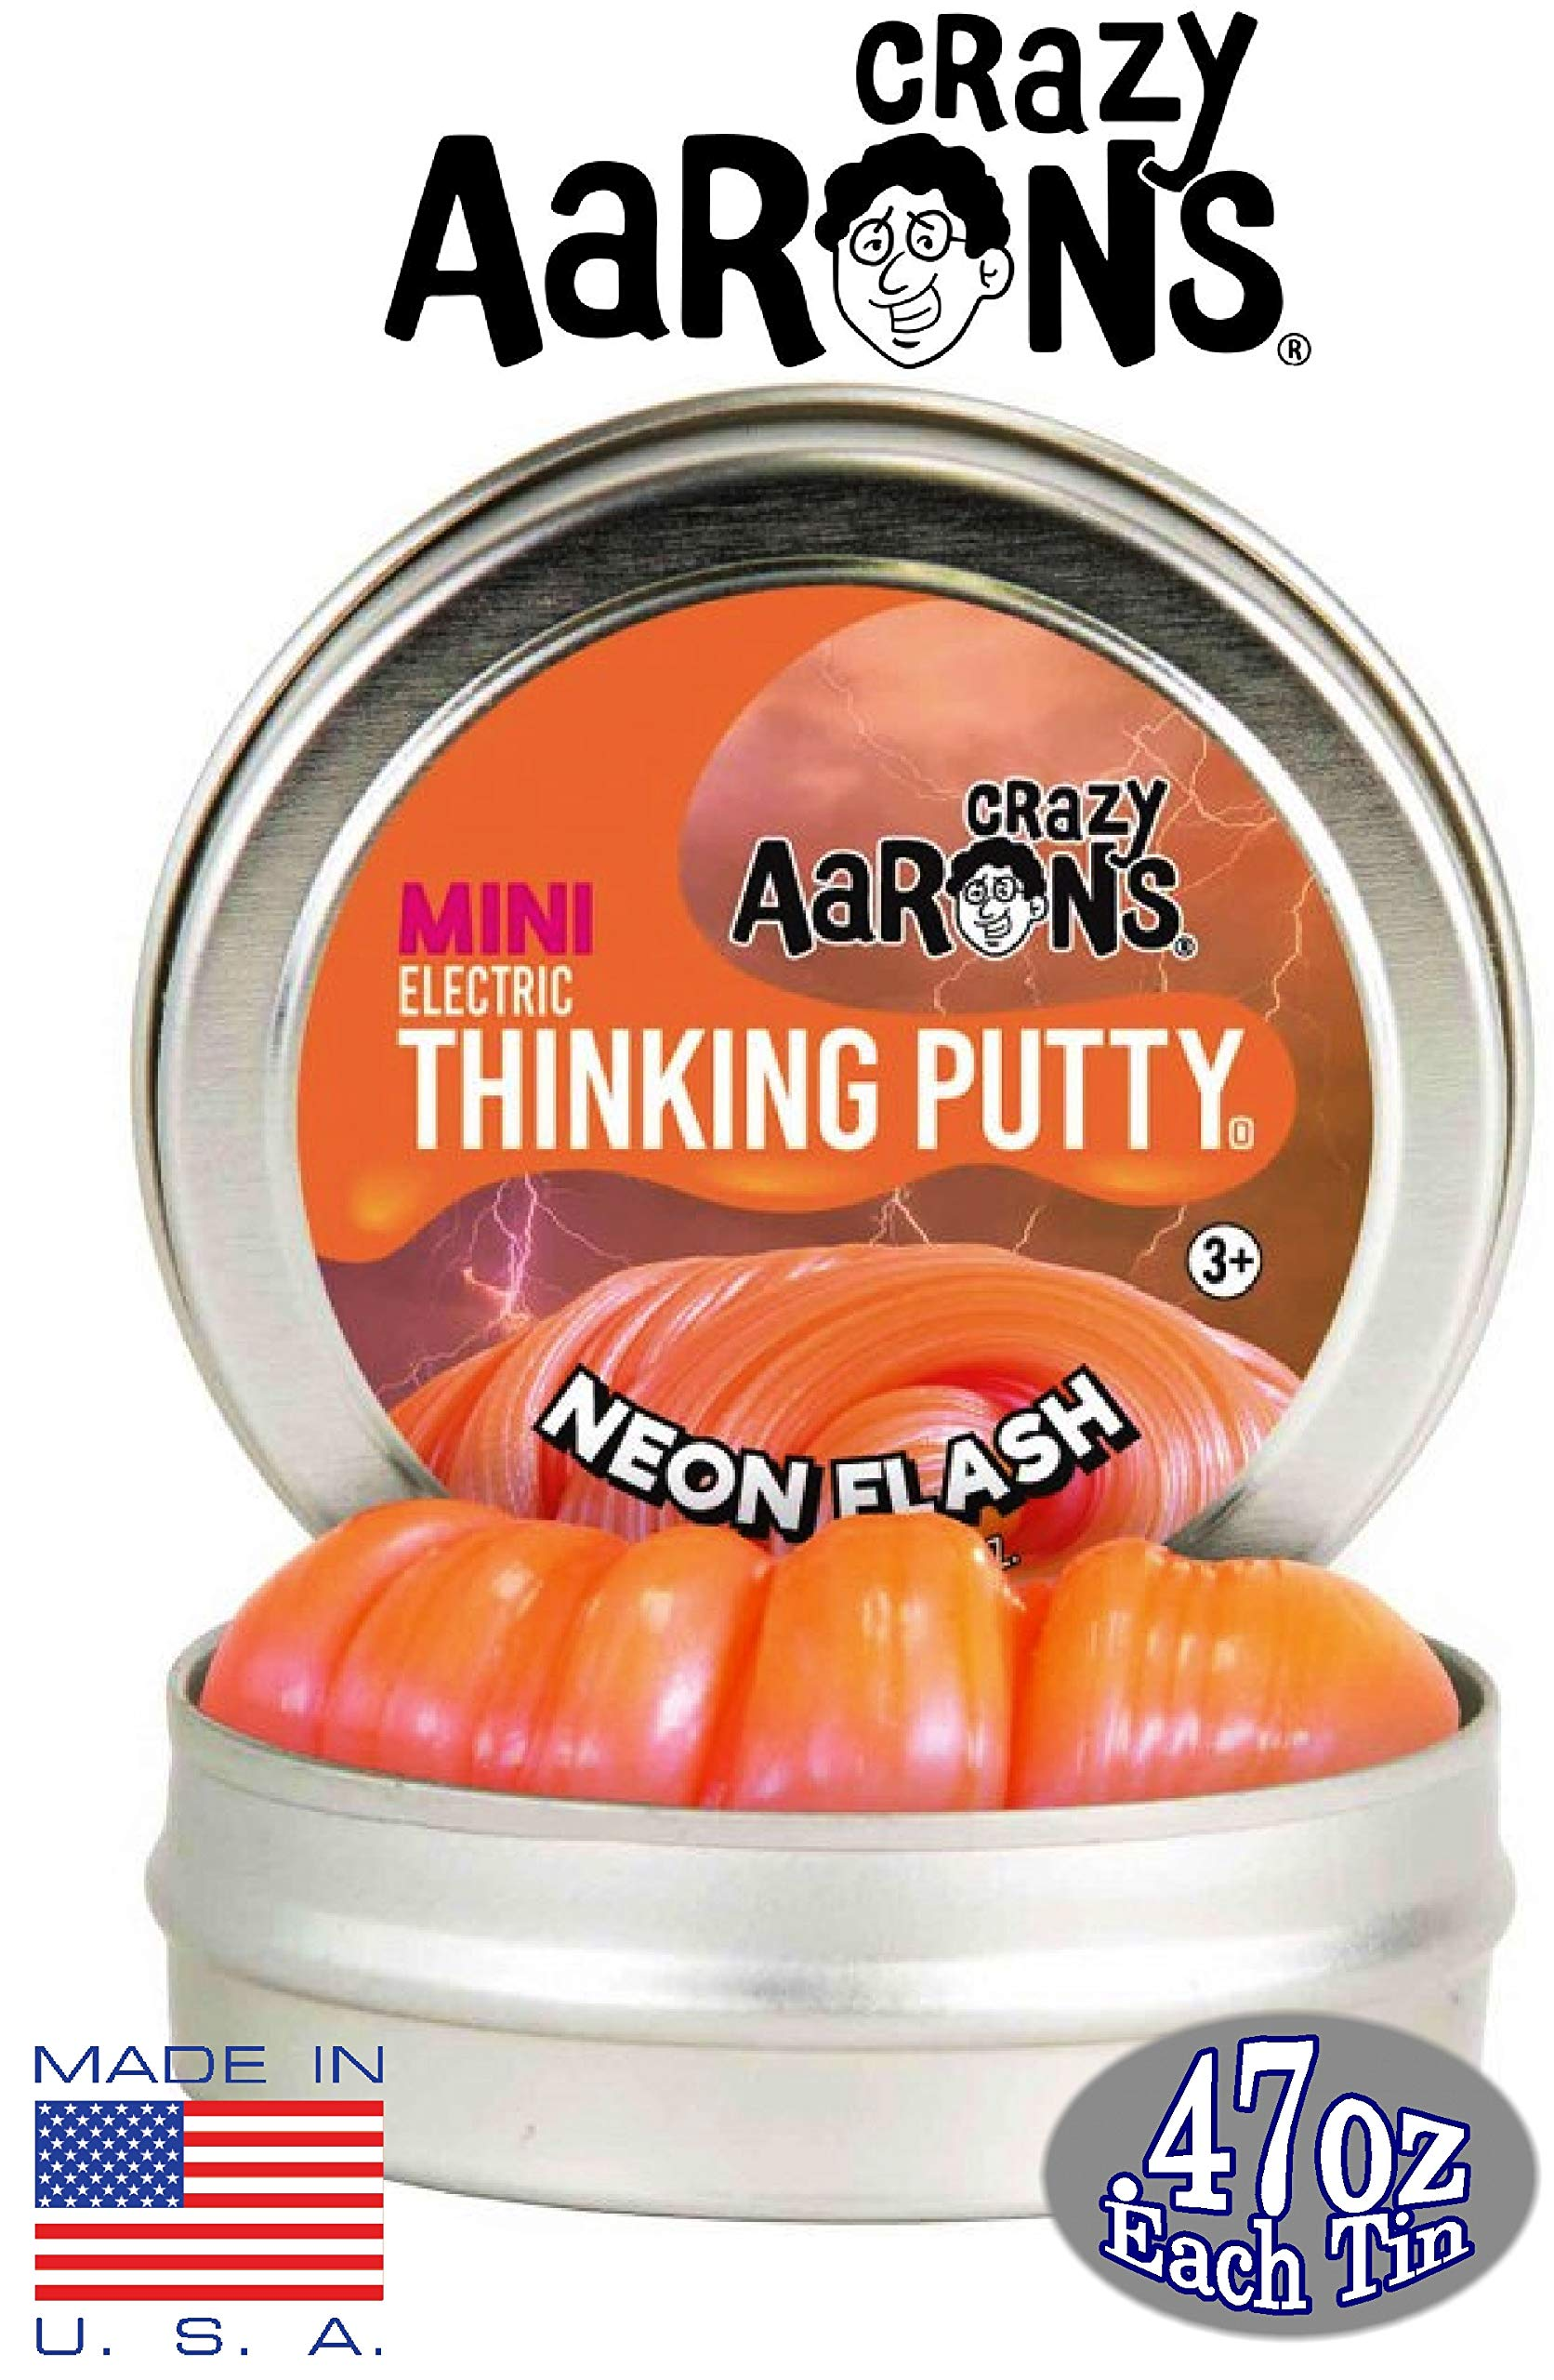 Crazy Aaron's Thinking Putty Mini Tin Gift Set Bundle (Sample Set 3) with Super Fly, Neon Flash, Super Lava, Amber, Love Air & Exclusive Scorpion Skin Glow in The Dark - 6 Pack by Crazy Aaron's (Image #2)